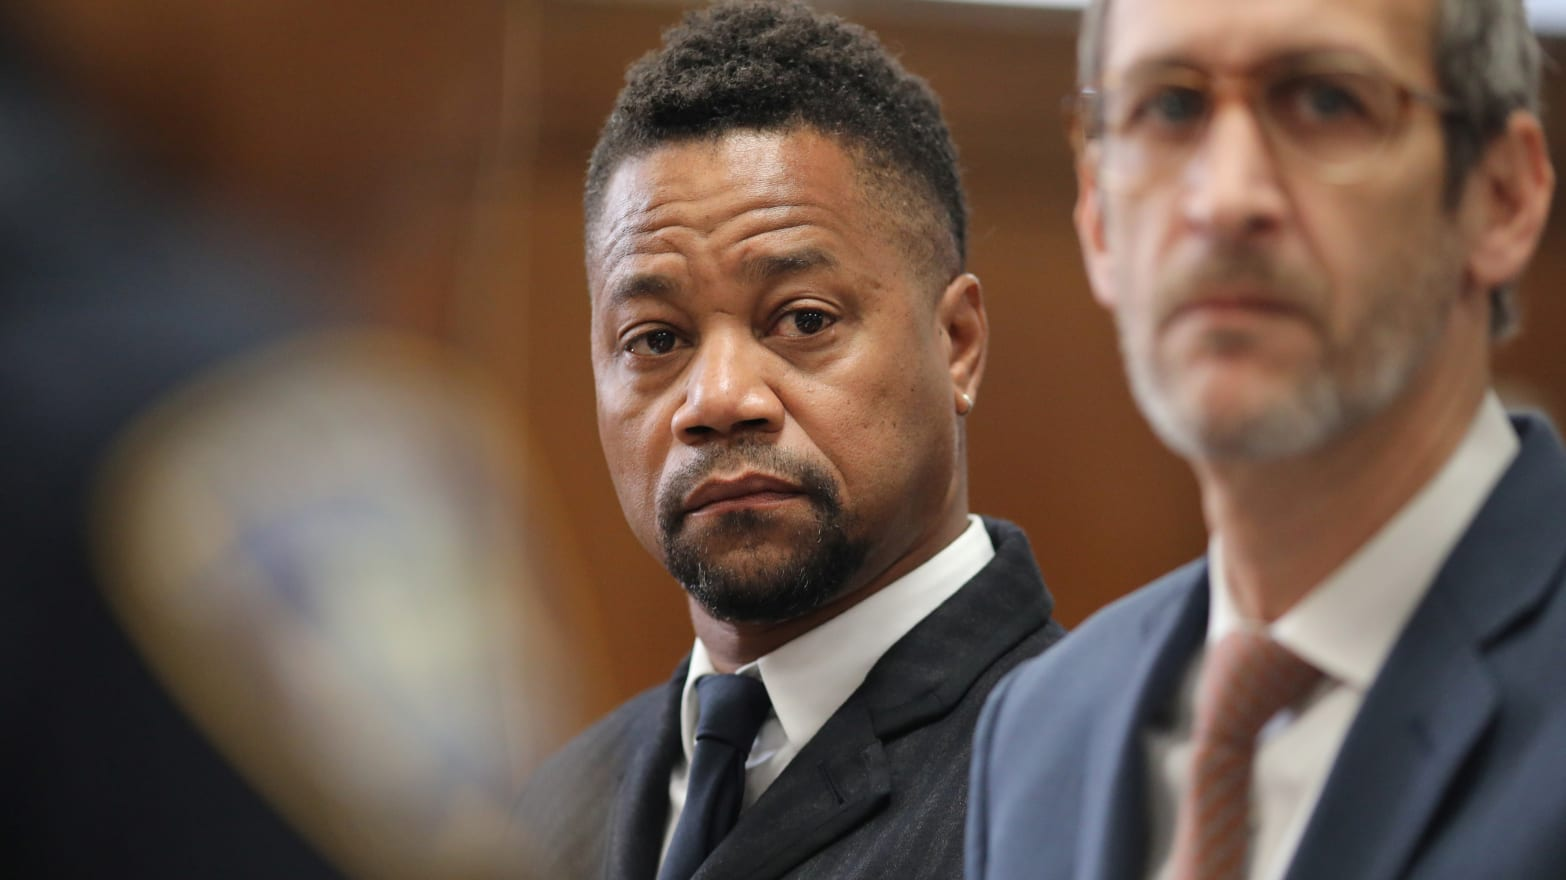 Dozen Women Ready to Testify Against Cuba Gooding Jr. at Groping Trial: Prosecutors